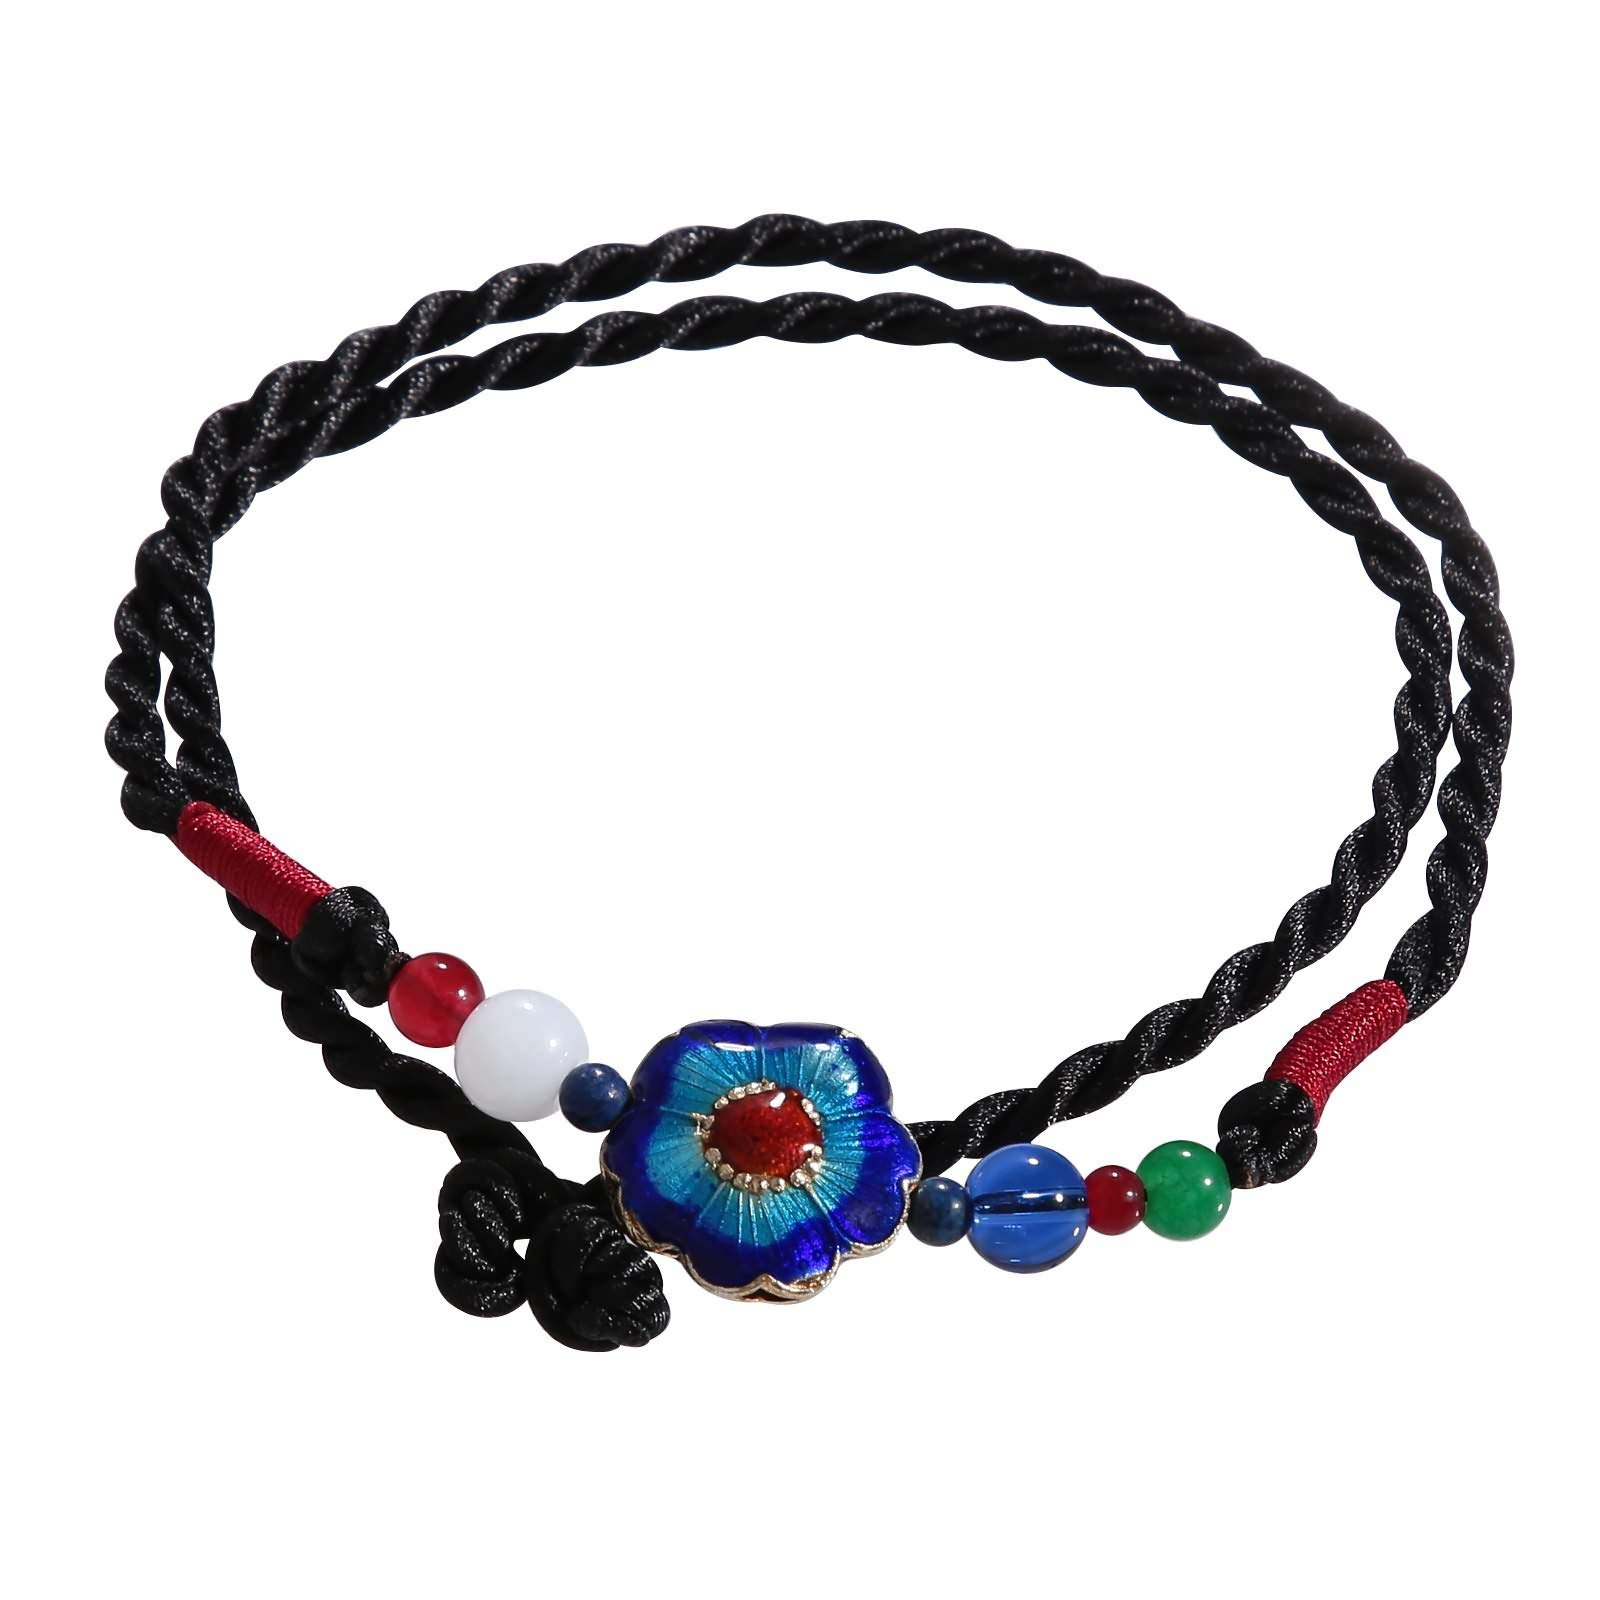 Beydodo Anklets with Colored Stones Foot Bracelet Colorful Braided Rope with Beads